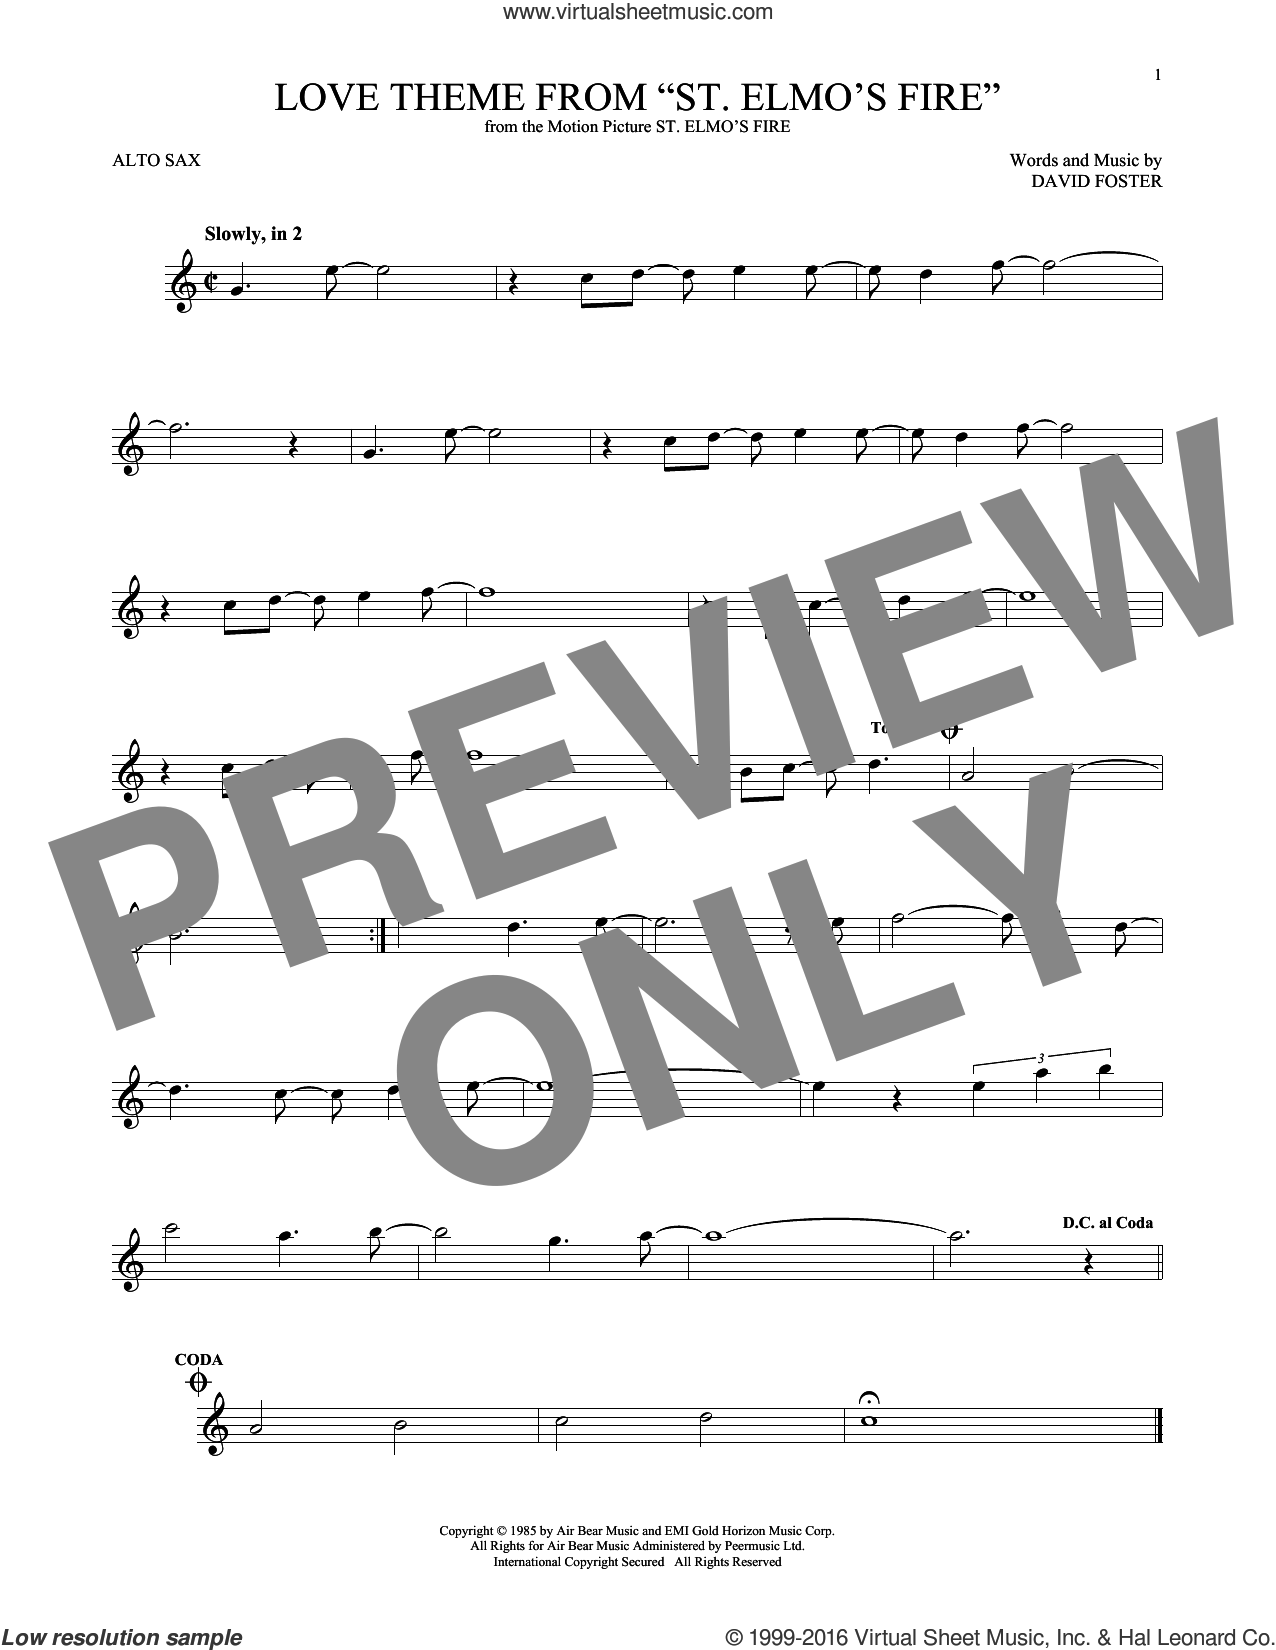 Love Theme From 'St. Elmo's Fire' sheet music for alto saxophone solo by David Foster, intermediate skill level